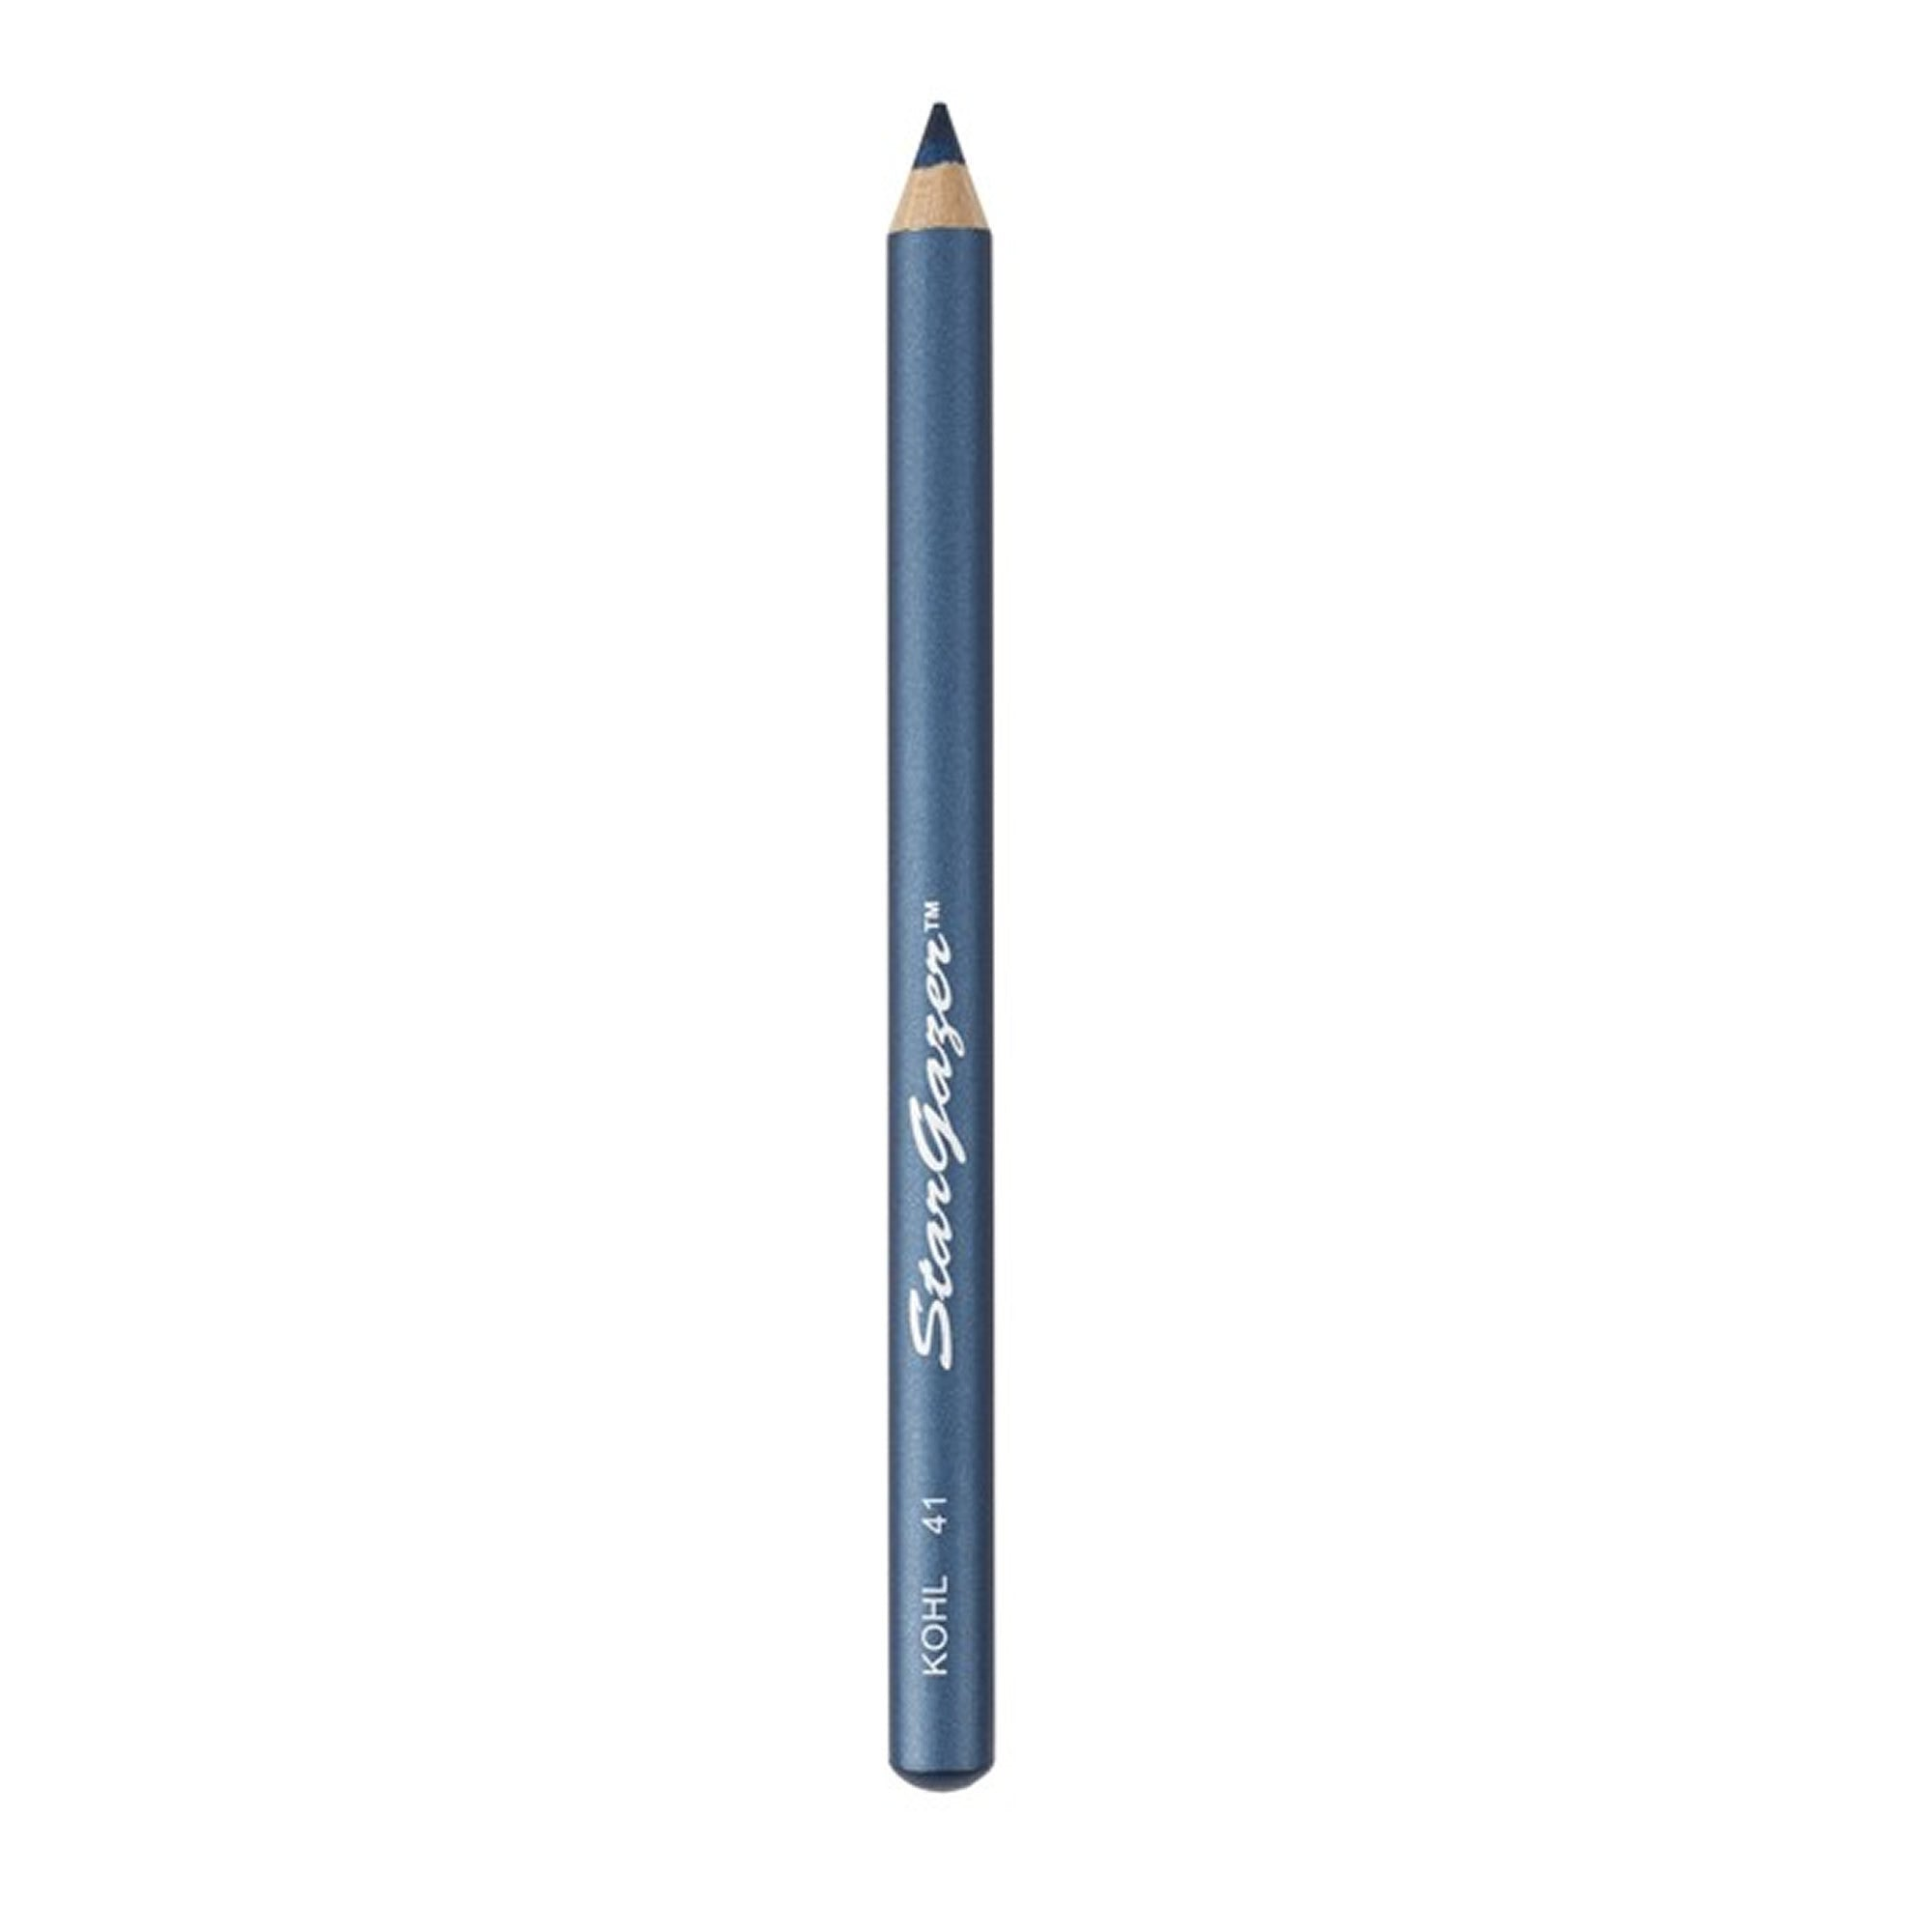 Stargazer Soft Eye Pencil - 41 - Red Carpet FX - Professional Makeup